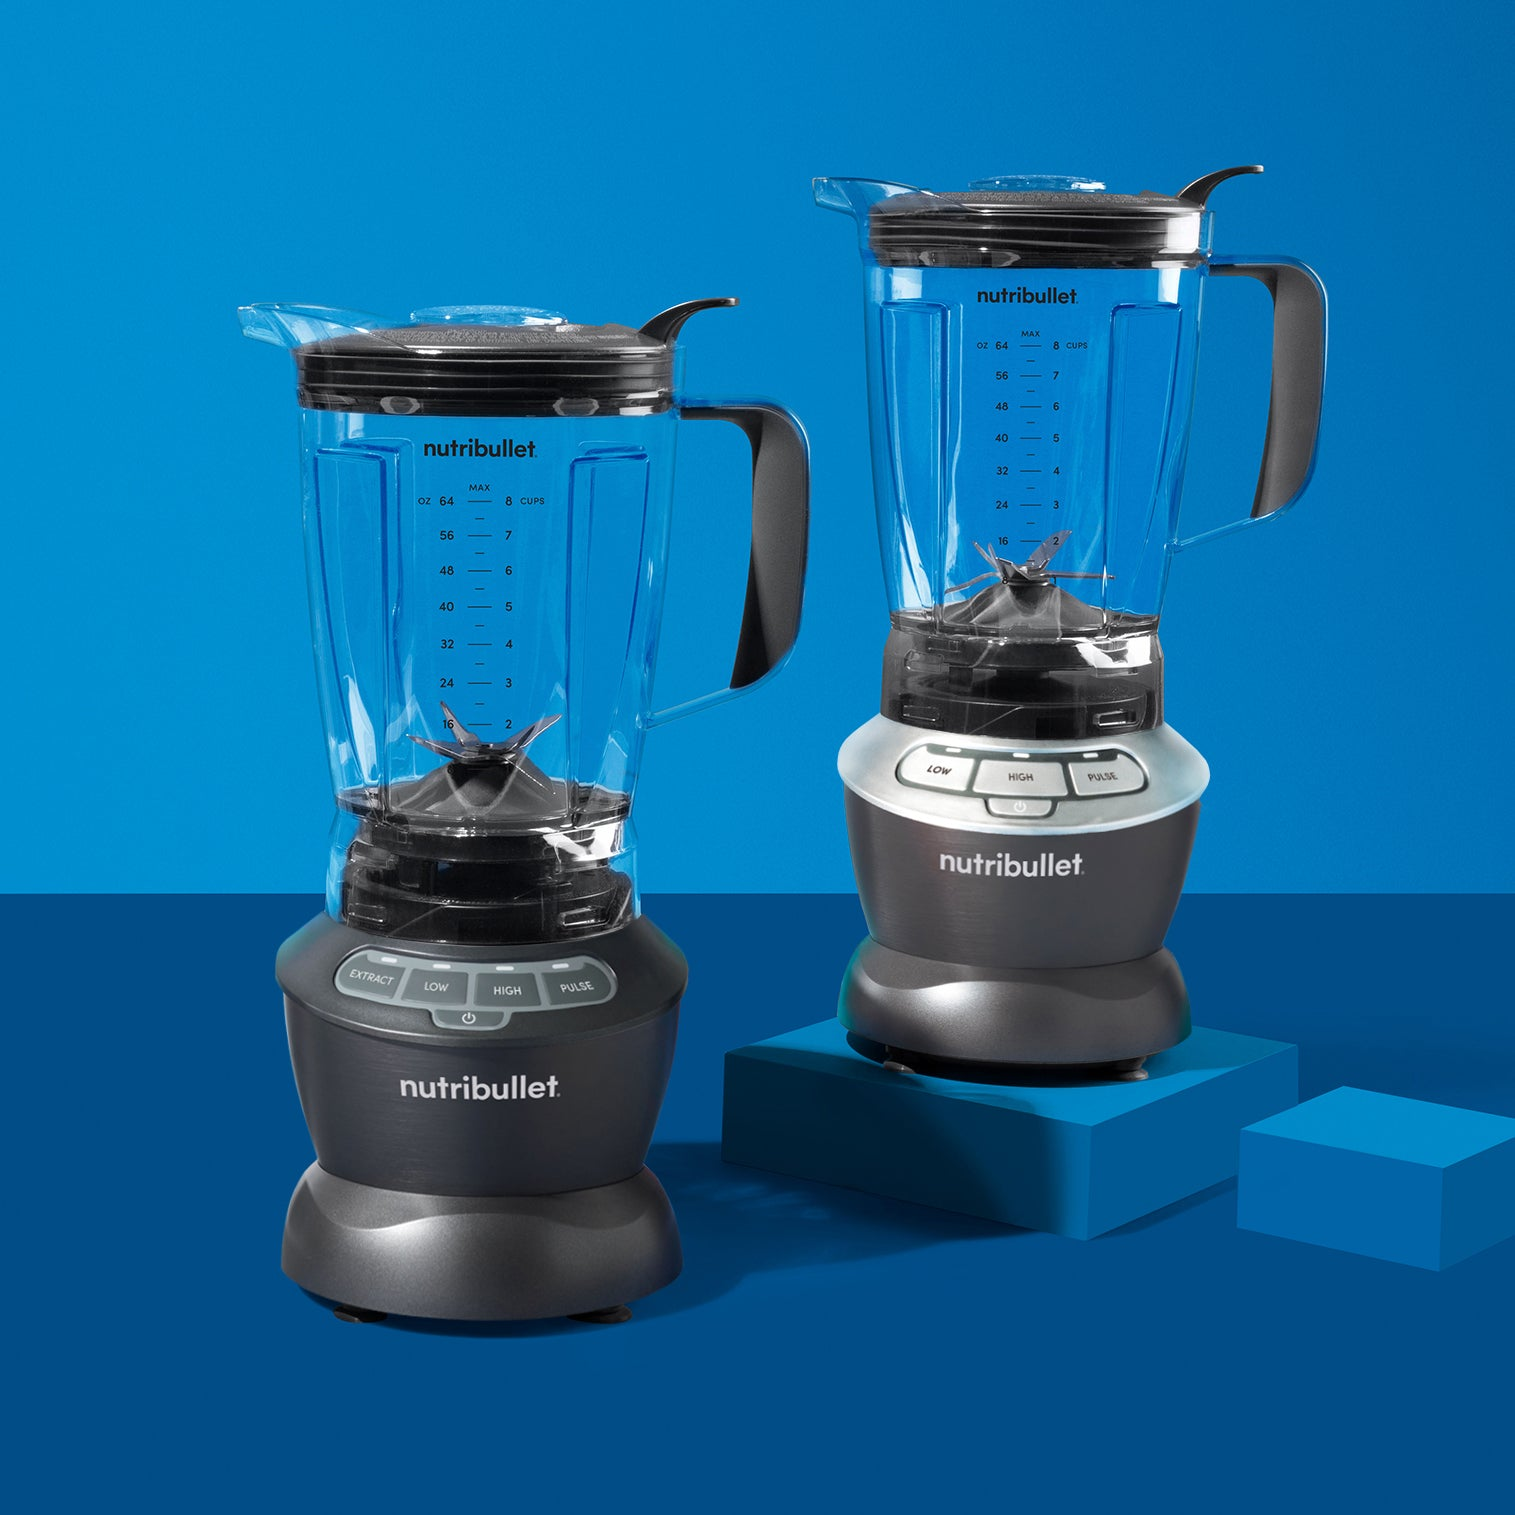 Full-sized blenders